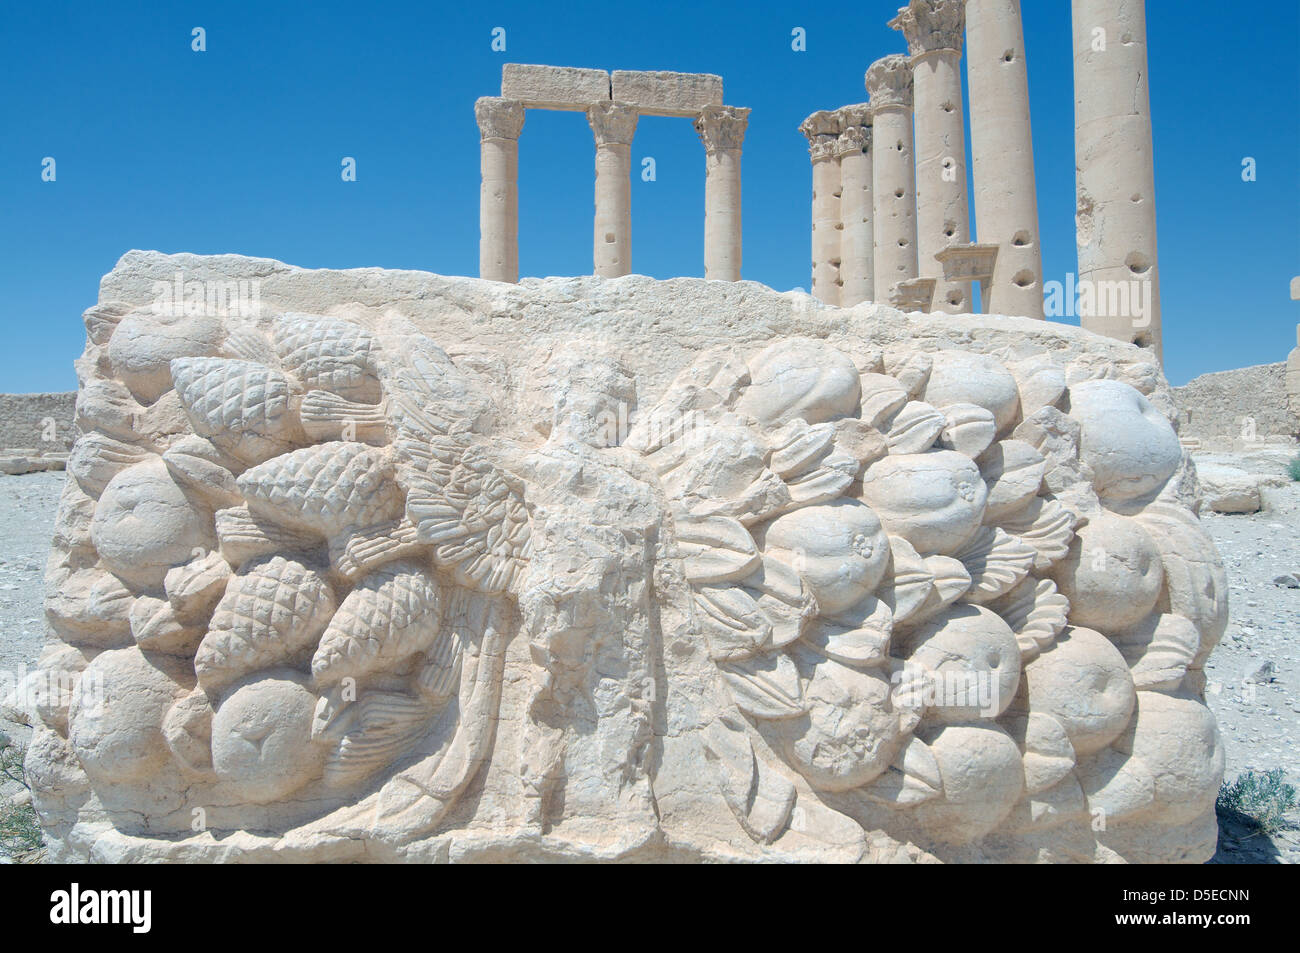 The Bas Reliefs On The Marble In Temple Of Bel Temple Of Baal In